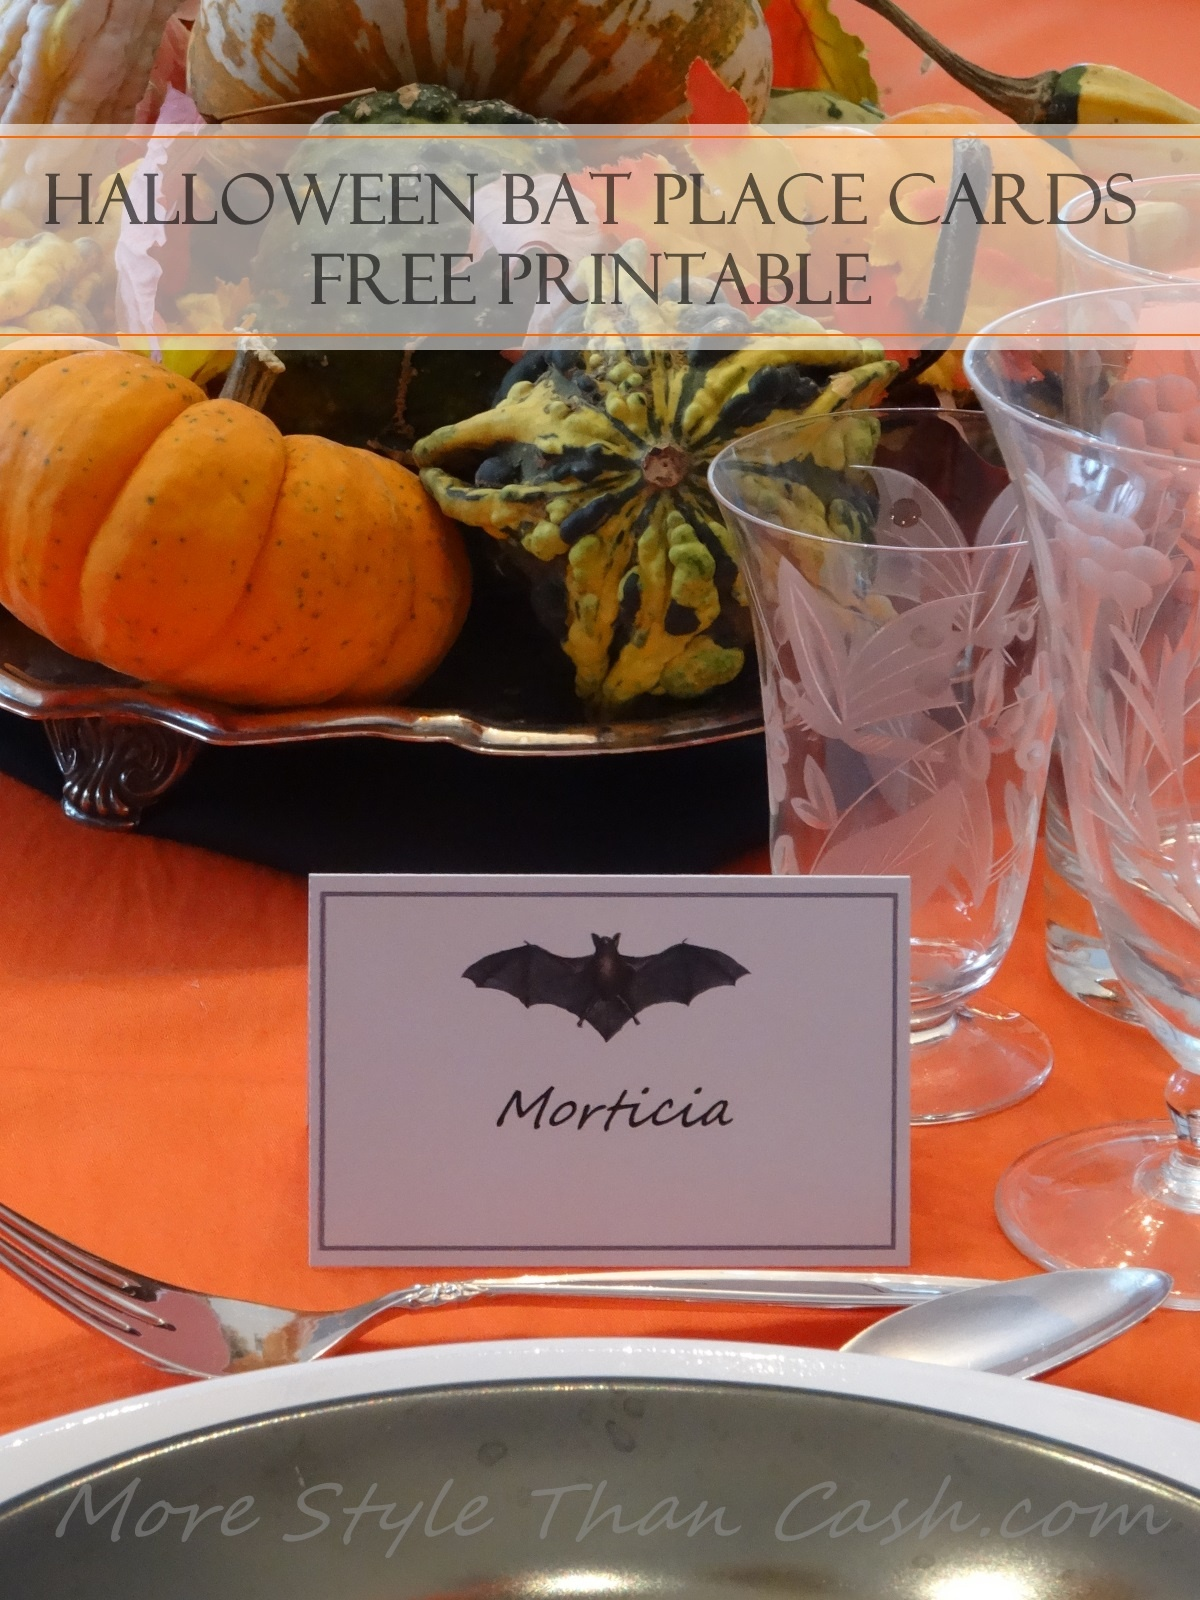 Halloween Bat Place Cards - Free Printable Halloween Place Cards